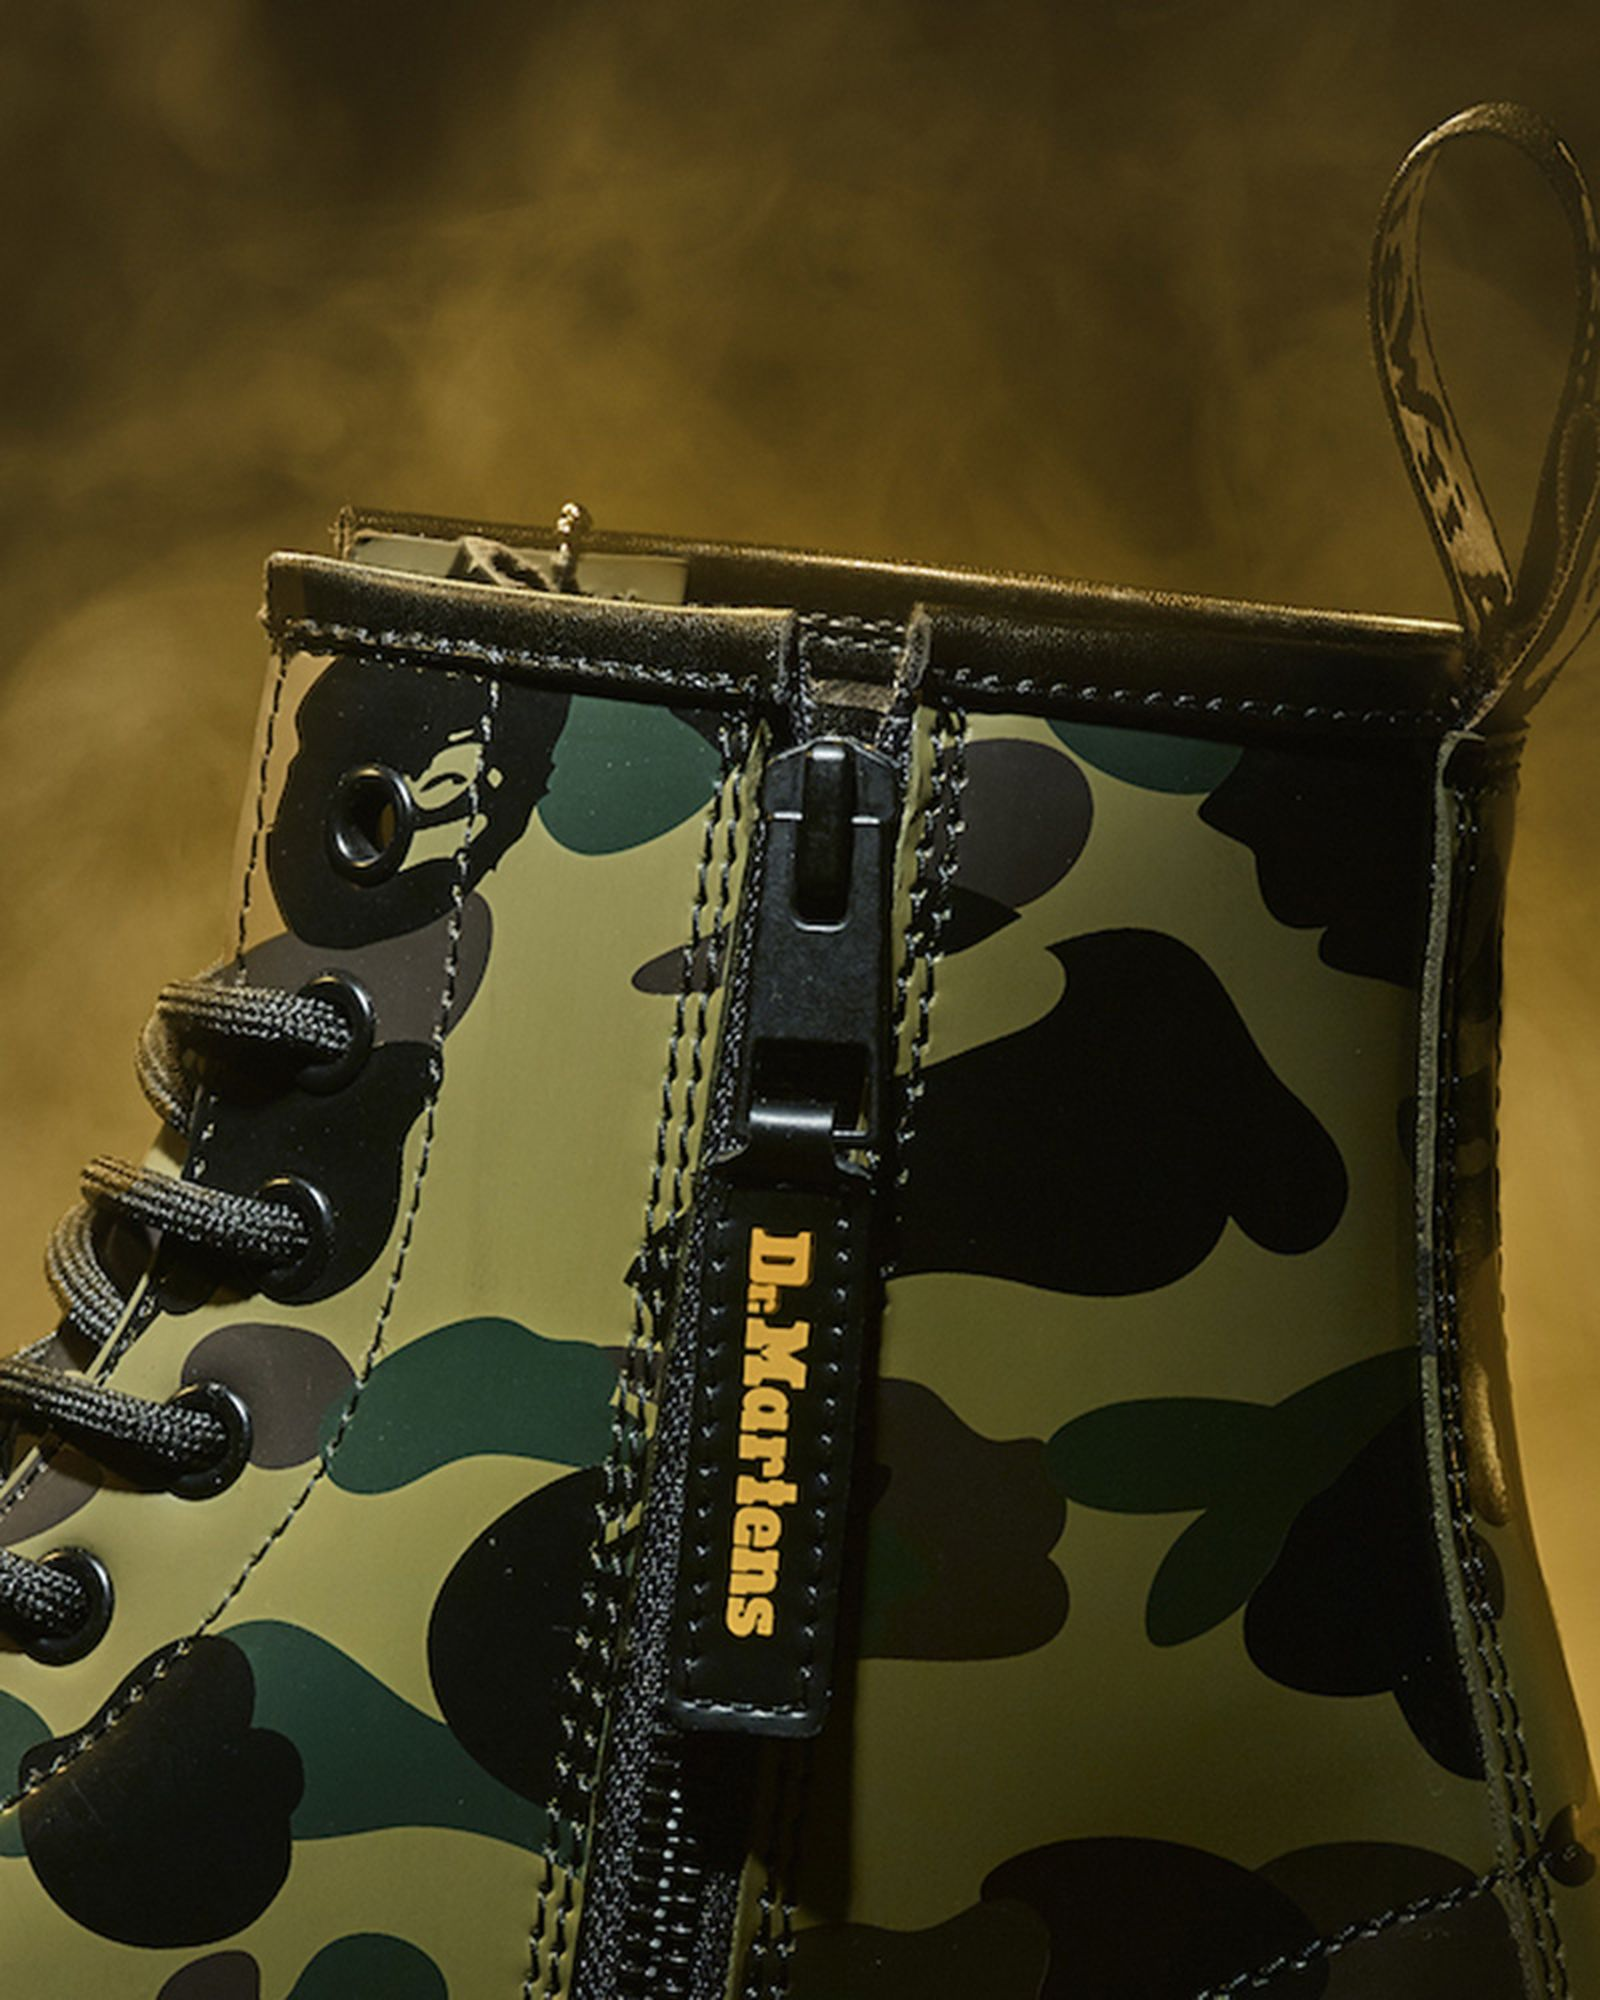 bape-dr-martens-1460-release-date-price-03